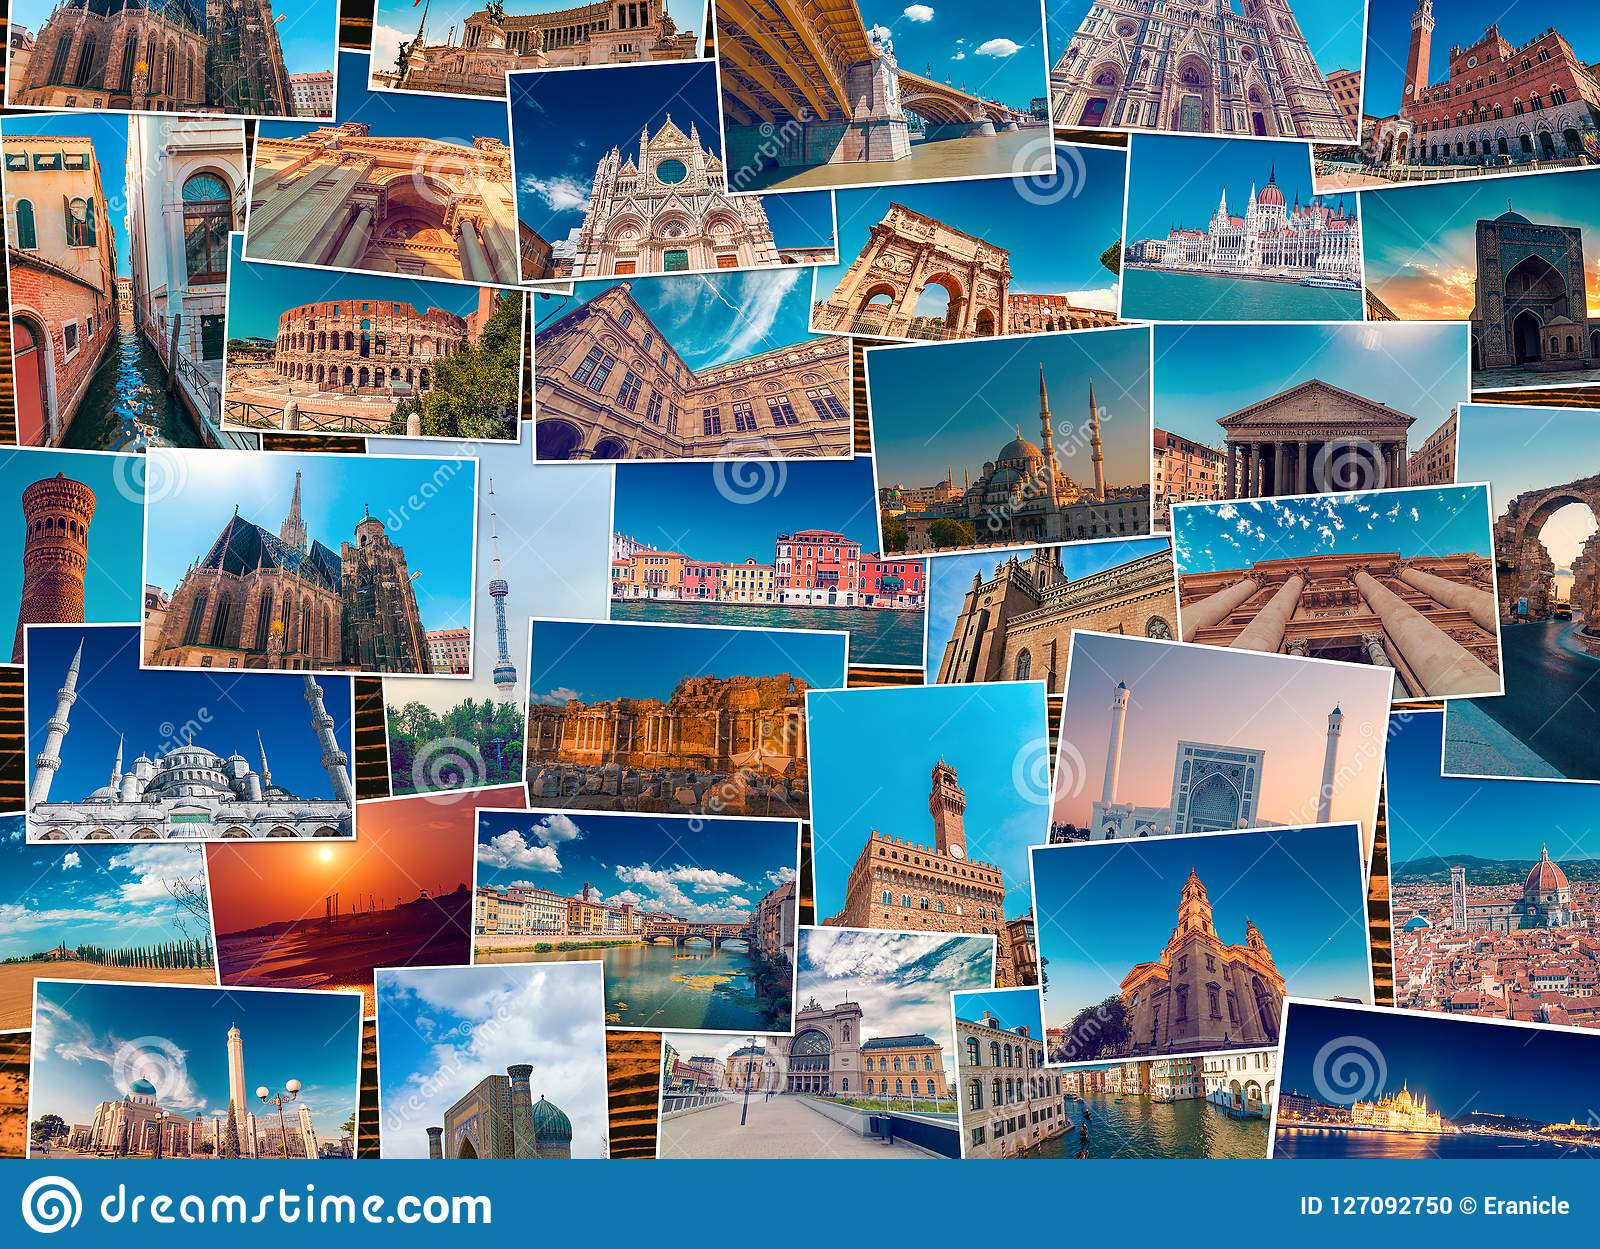 Photo Collage Made Of Diverse World Travel Destinations Stock Photo Image Of Many Different 127092750